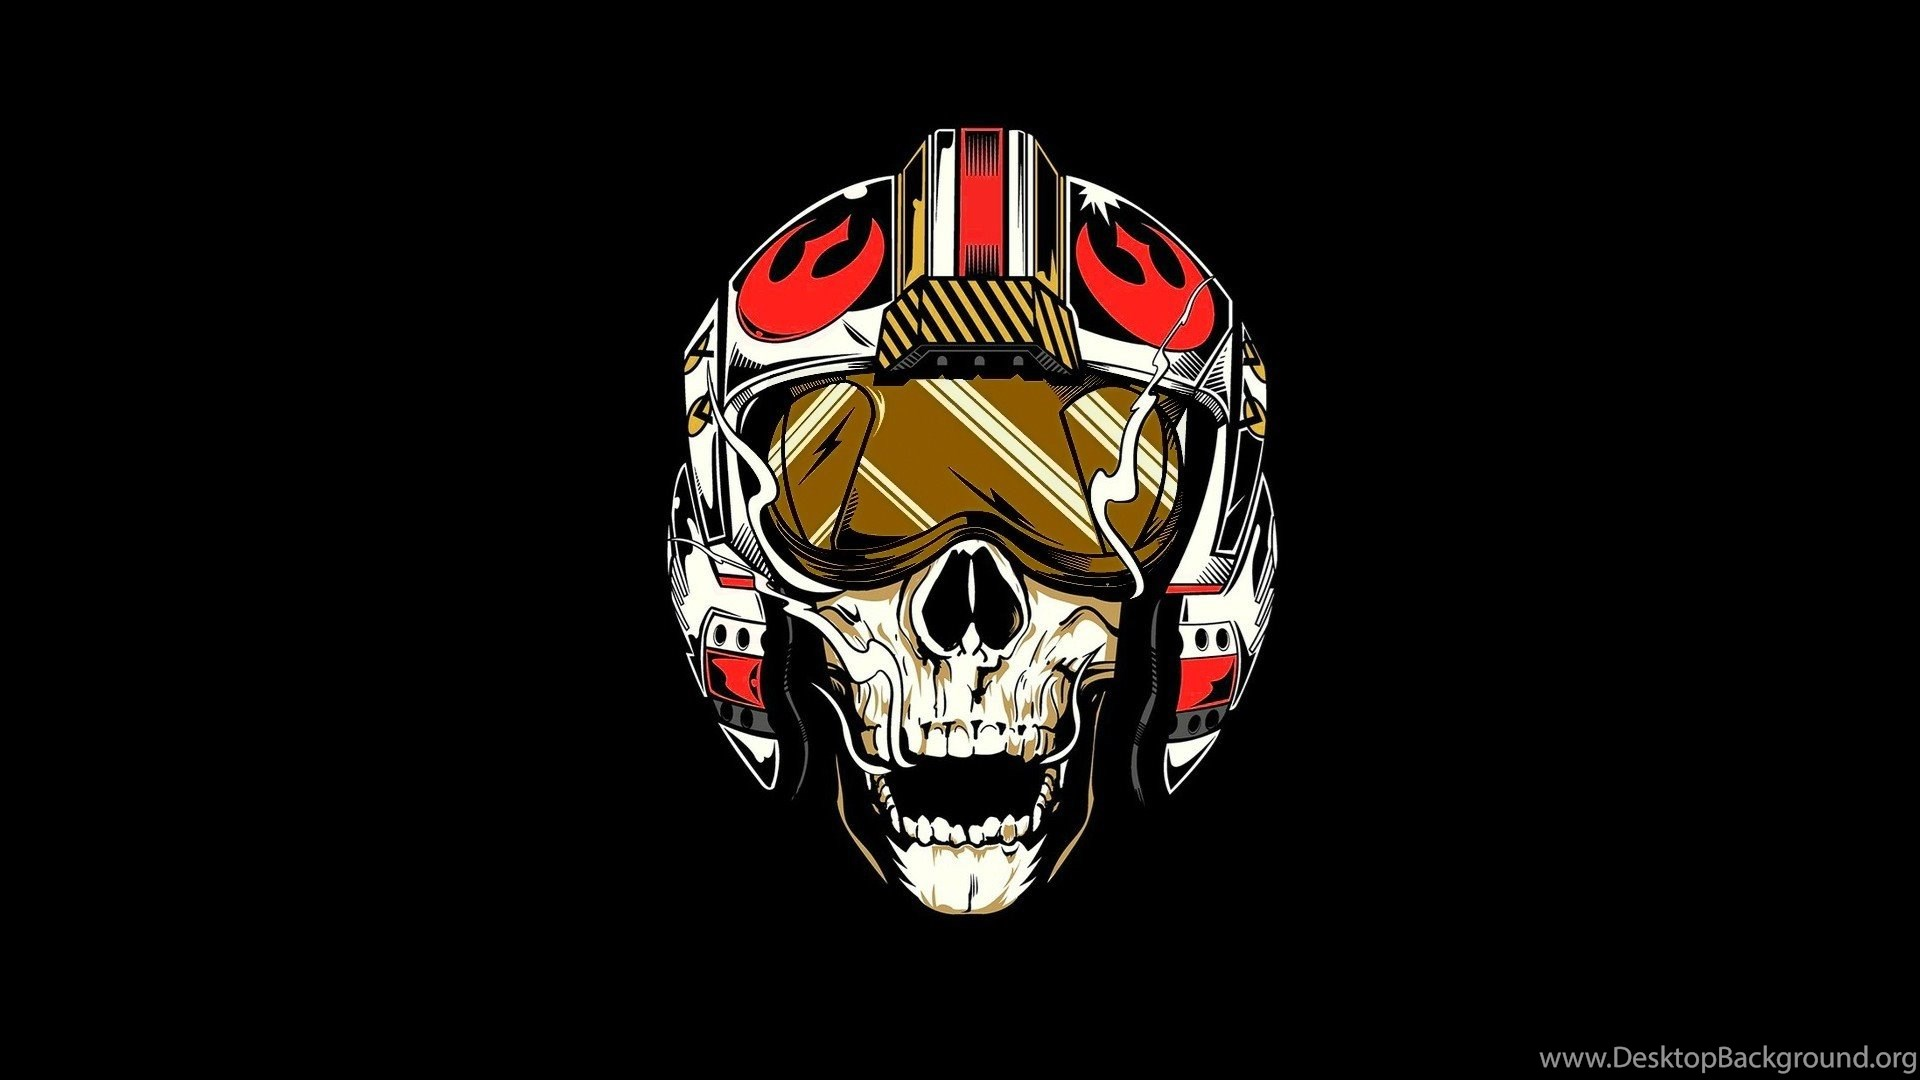 Star Wars Rebel Alliance Pilot Skull Wallpapers Hd Desktop Desktop Background